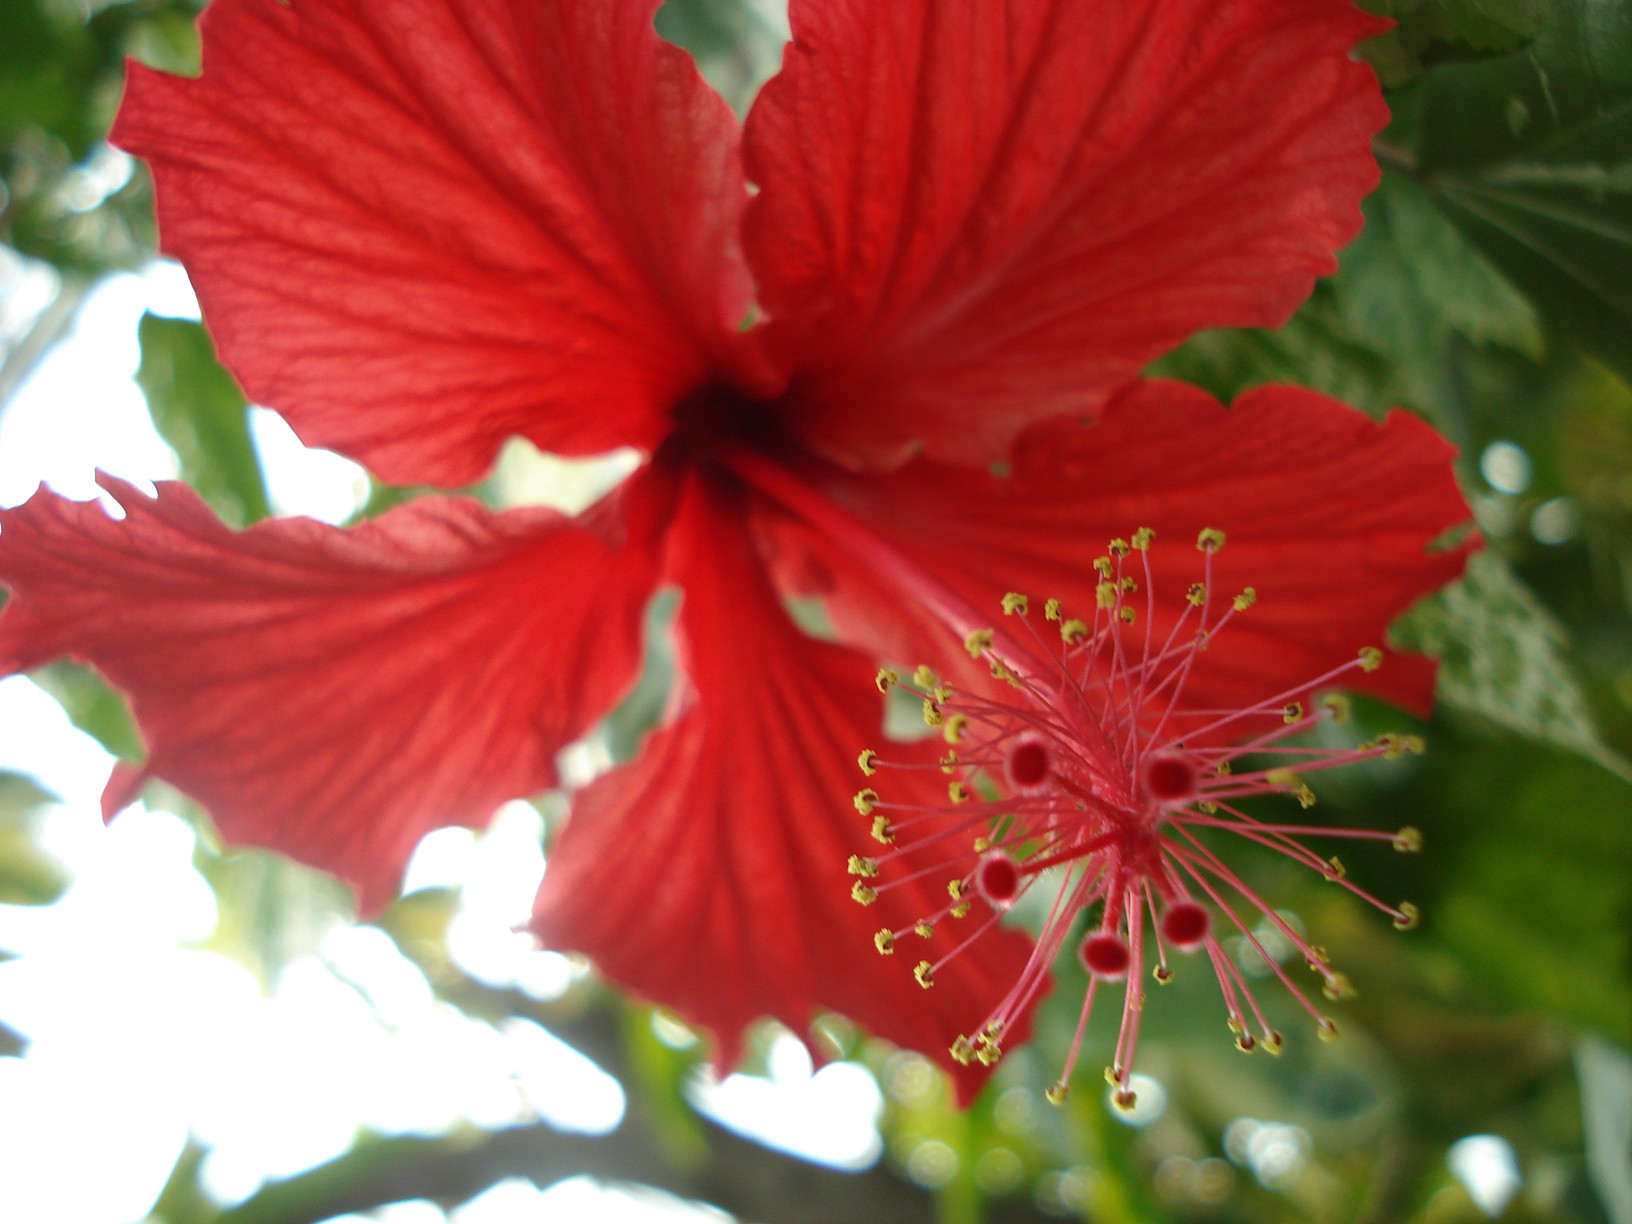 We like what we see botany thoughts medium no one really calls this sort of flower rose mallow though that is one of its common names ive always heard it called hibiscus izmirmasajfo